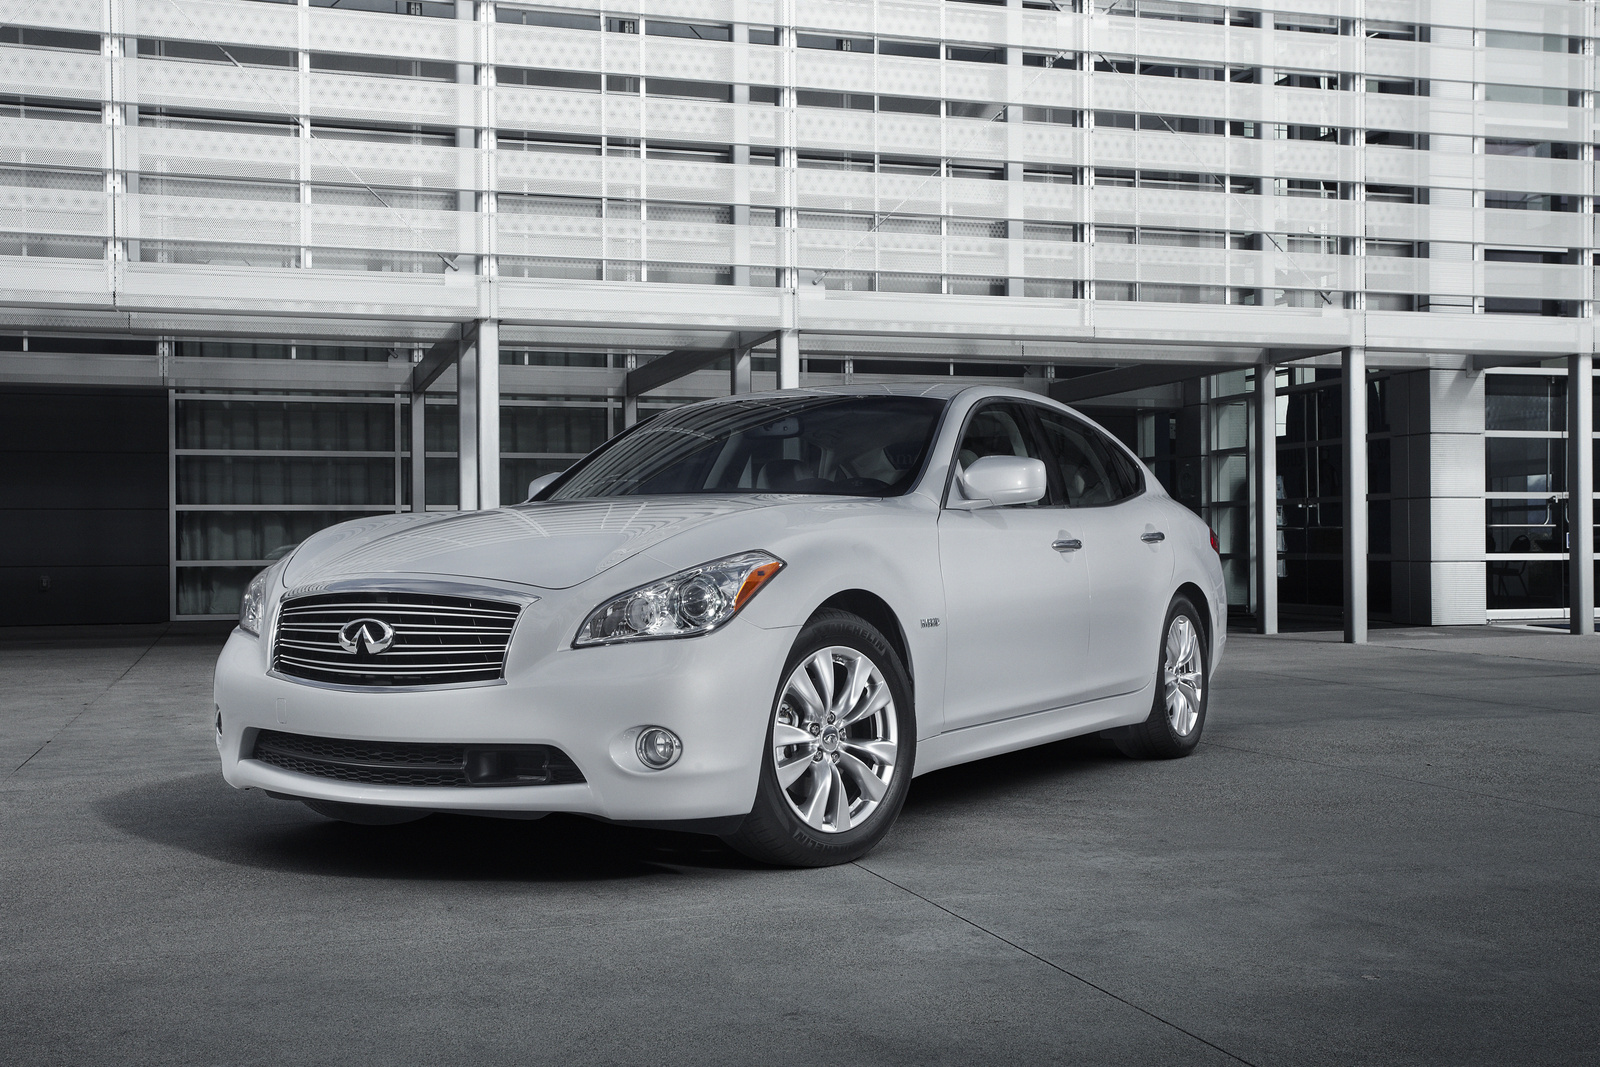 2013 Infiniti M35h Overview Cargurus Remote Starter For M35x